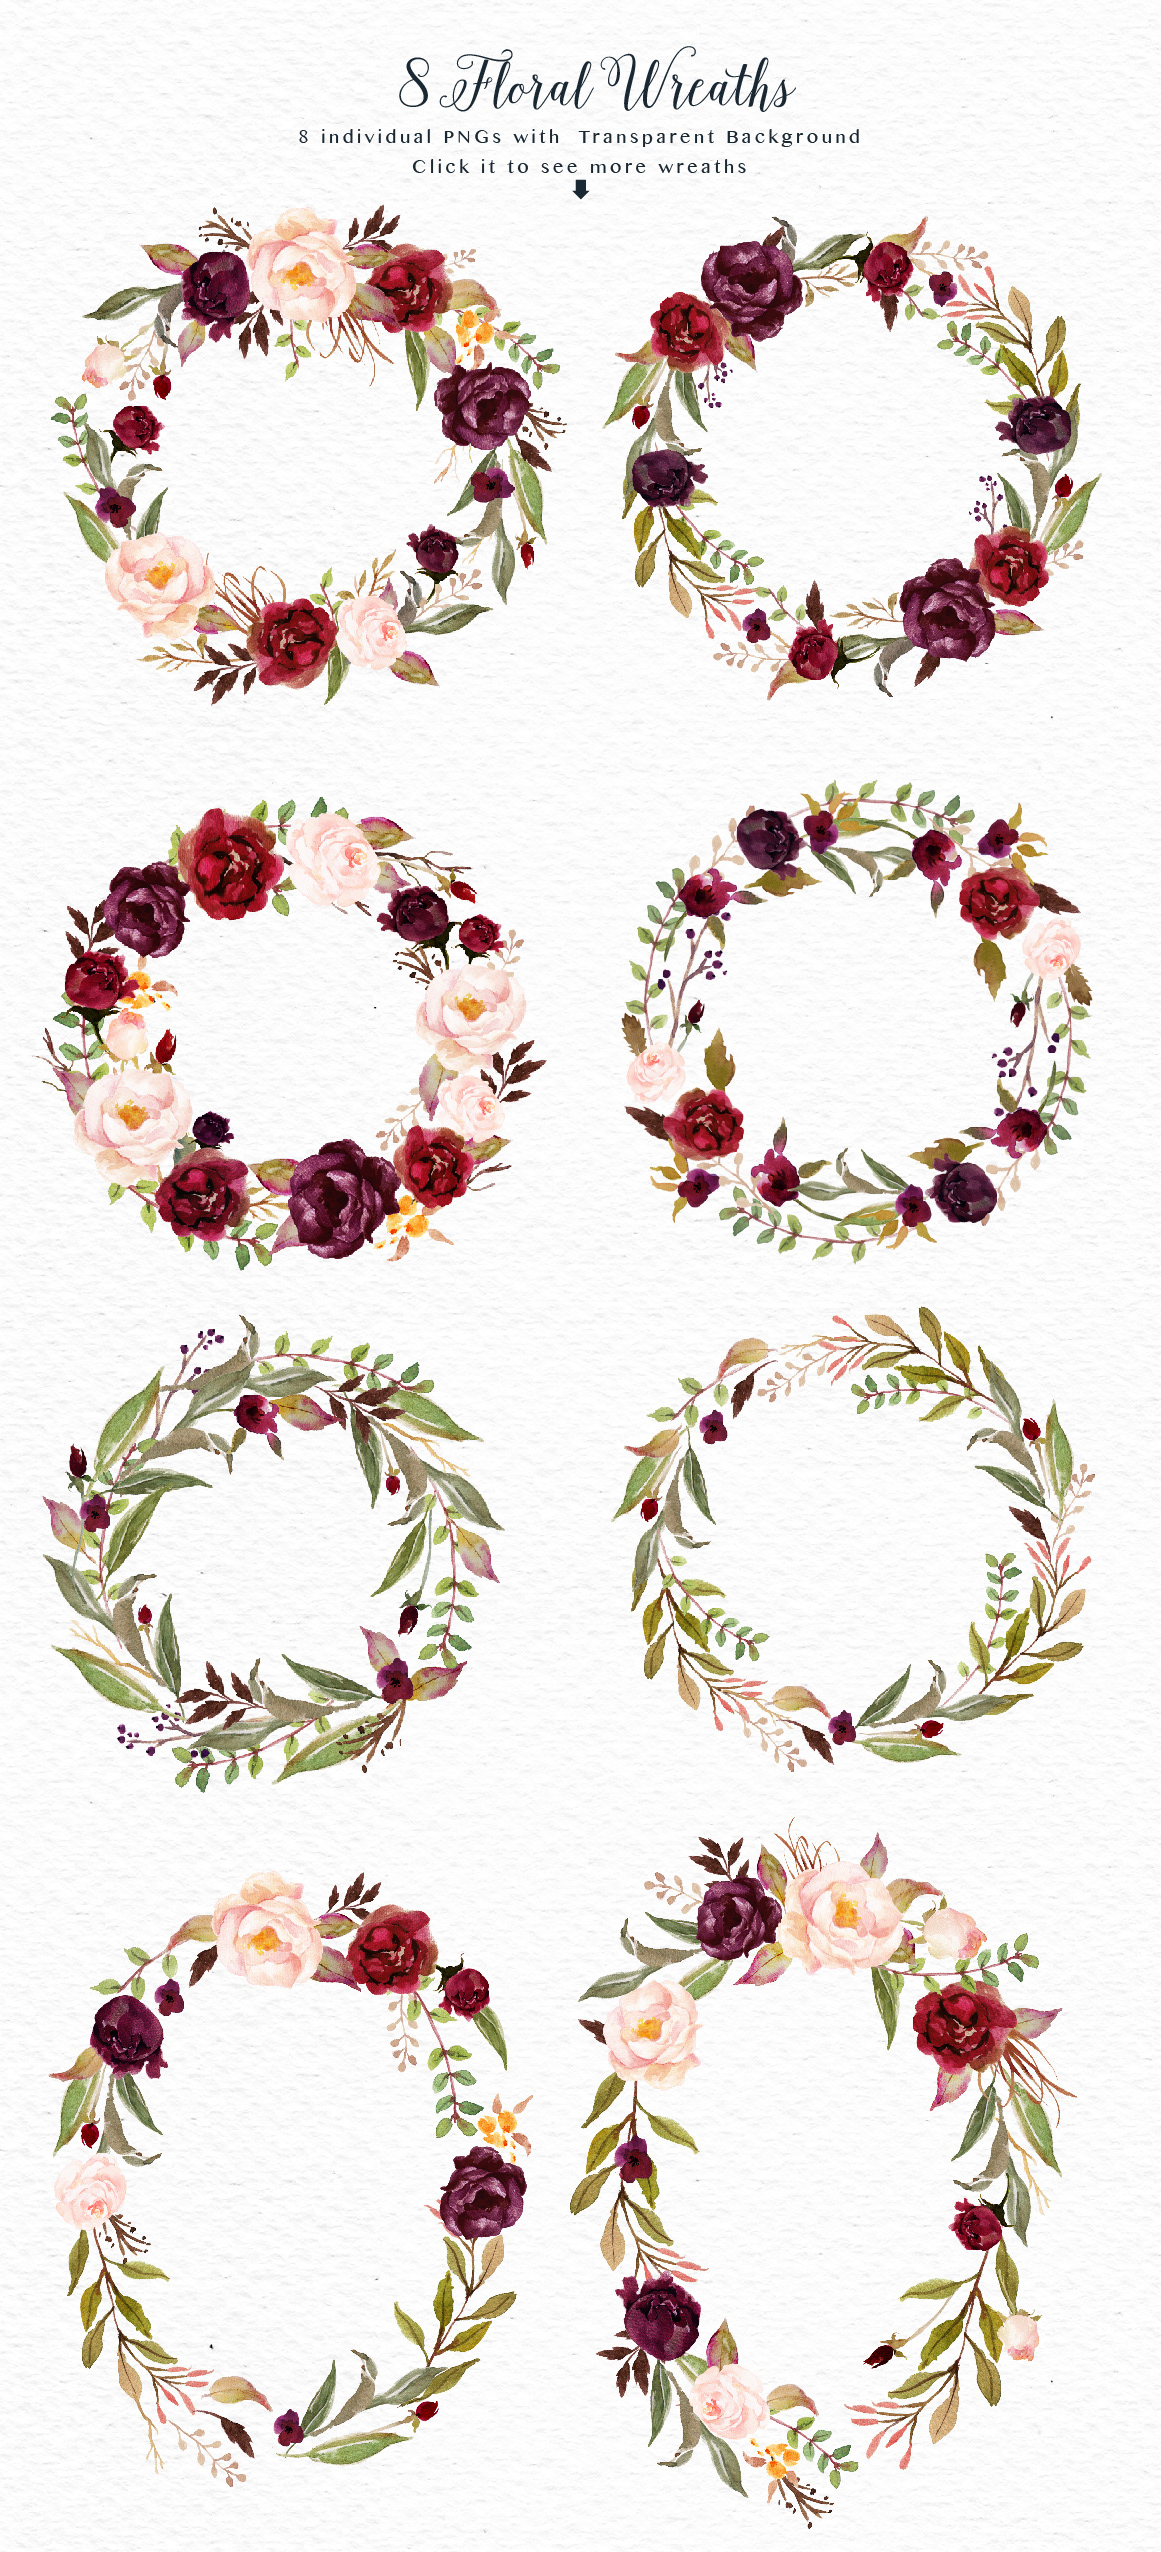 70 PNG300dpi Hand Drawn Watercolor Graphic ElementsEach Element On An Individual Png With Transparent Background 9 Flowers